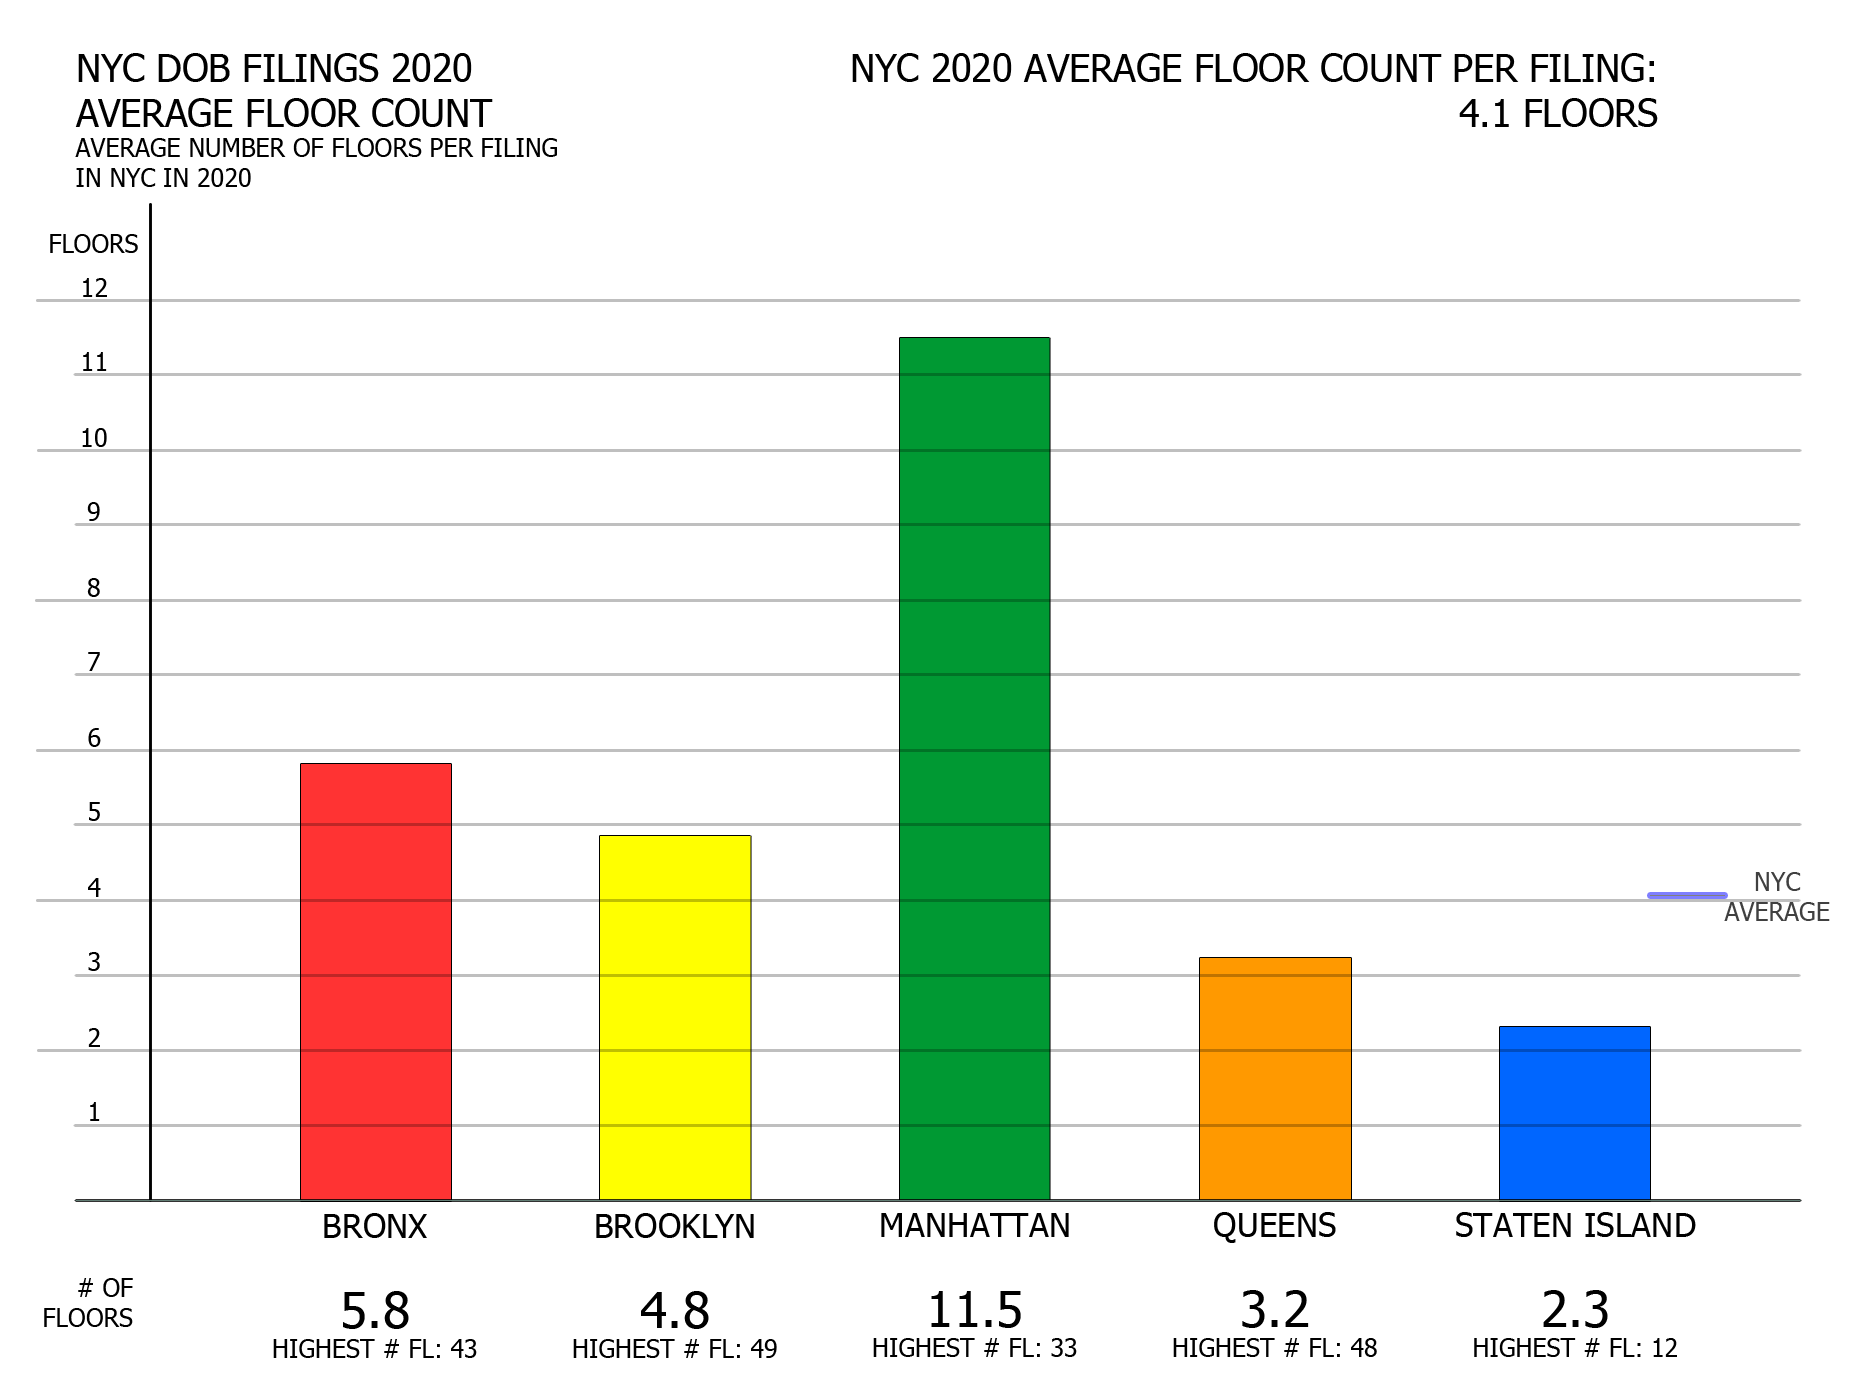 NYC DOB filings in 2020 by average floor count. Credit: Vitali Ogorodnikov